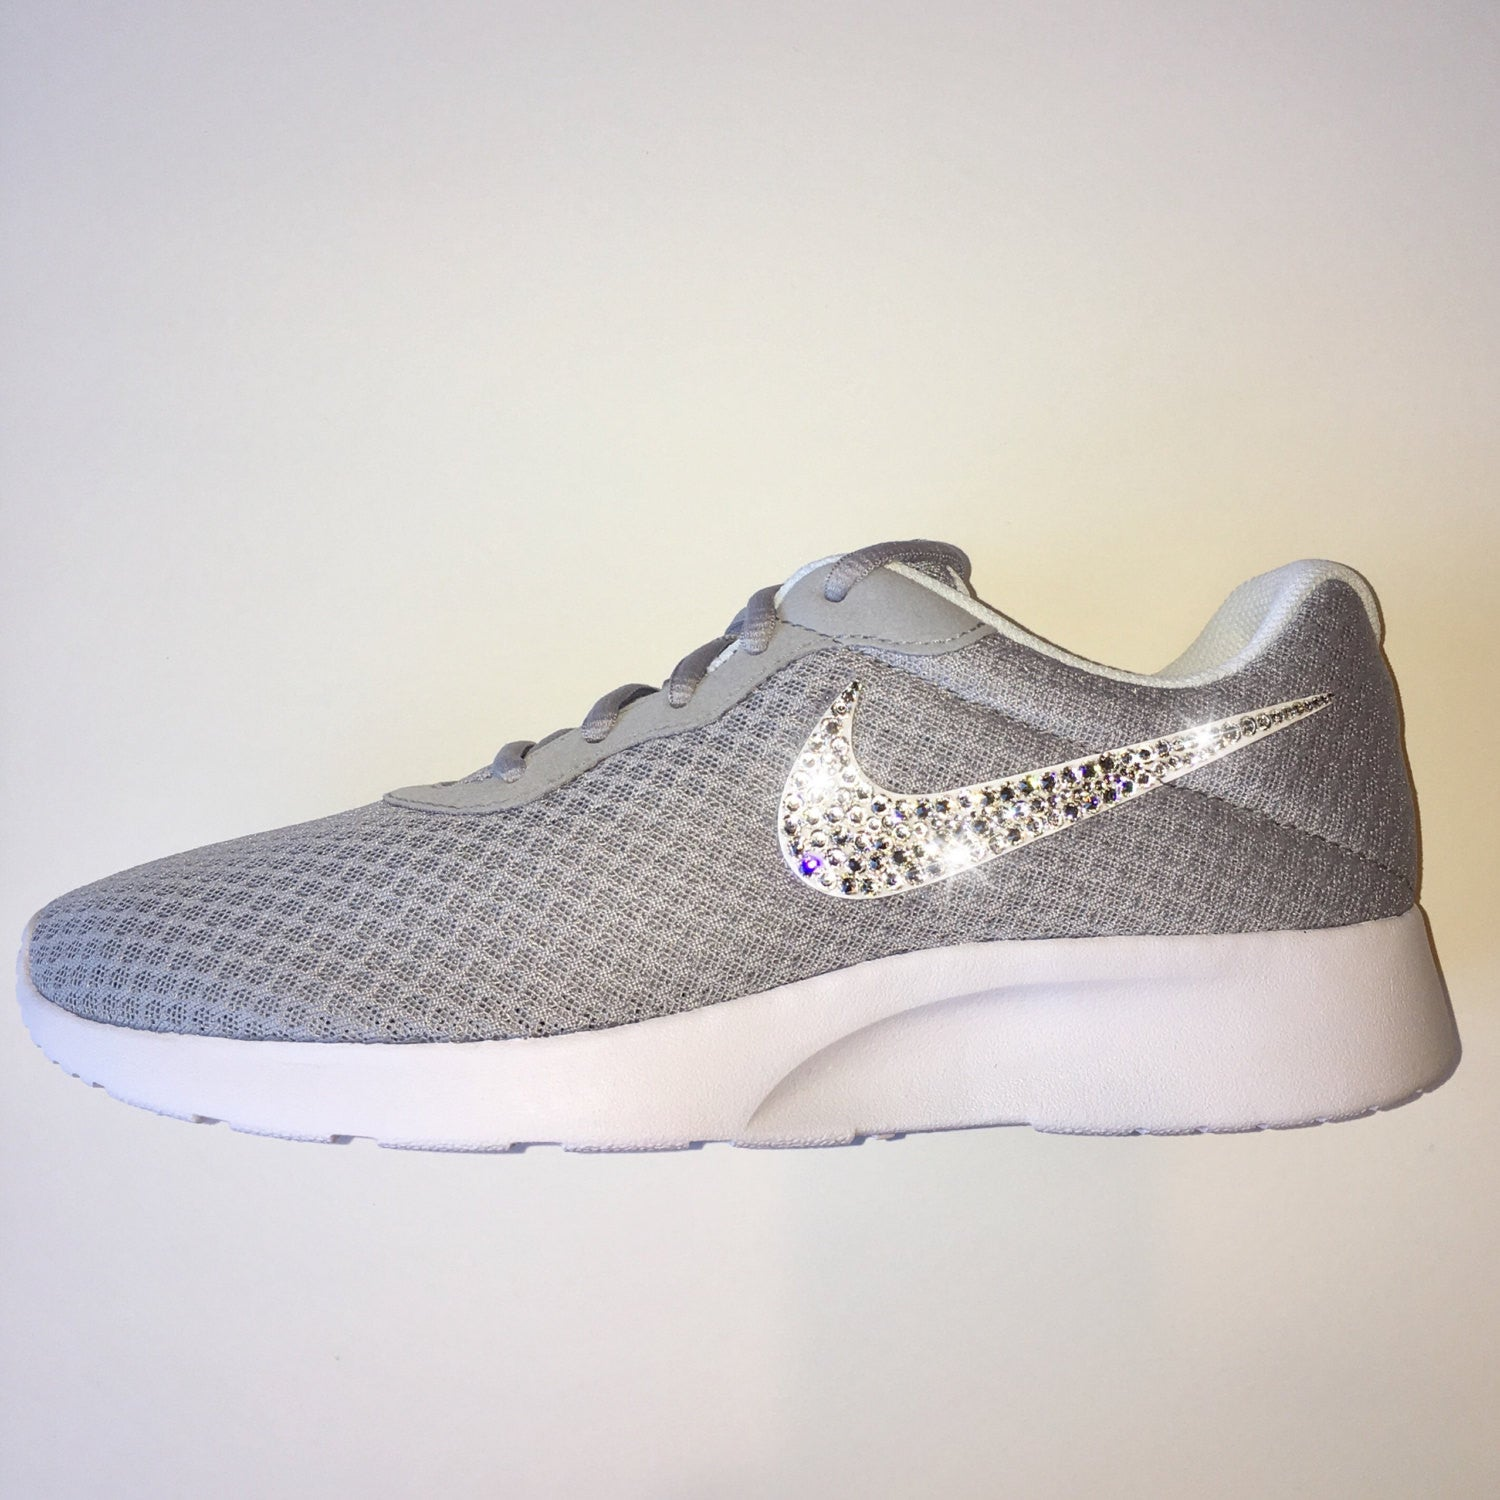 7aa27de5ff90a9 ... Bling Nike Tanjun Shoes with Swarovski Crystals  Grey   White    Bedazzled Shoes with Rhinestones ...